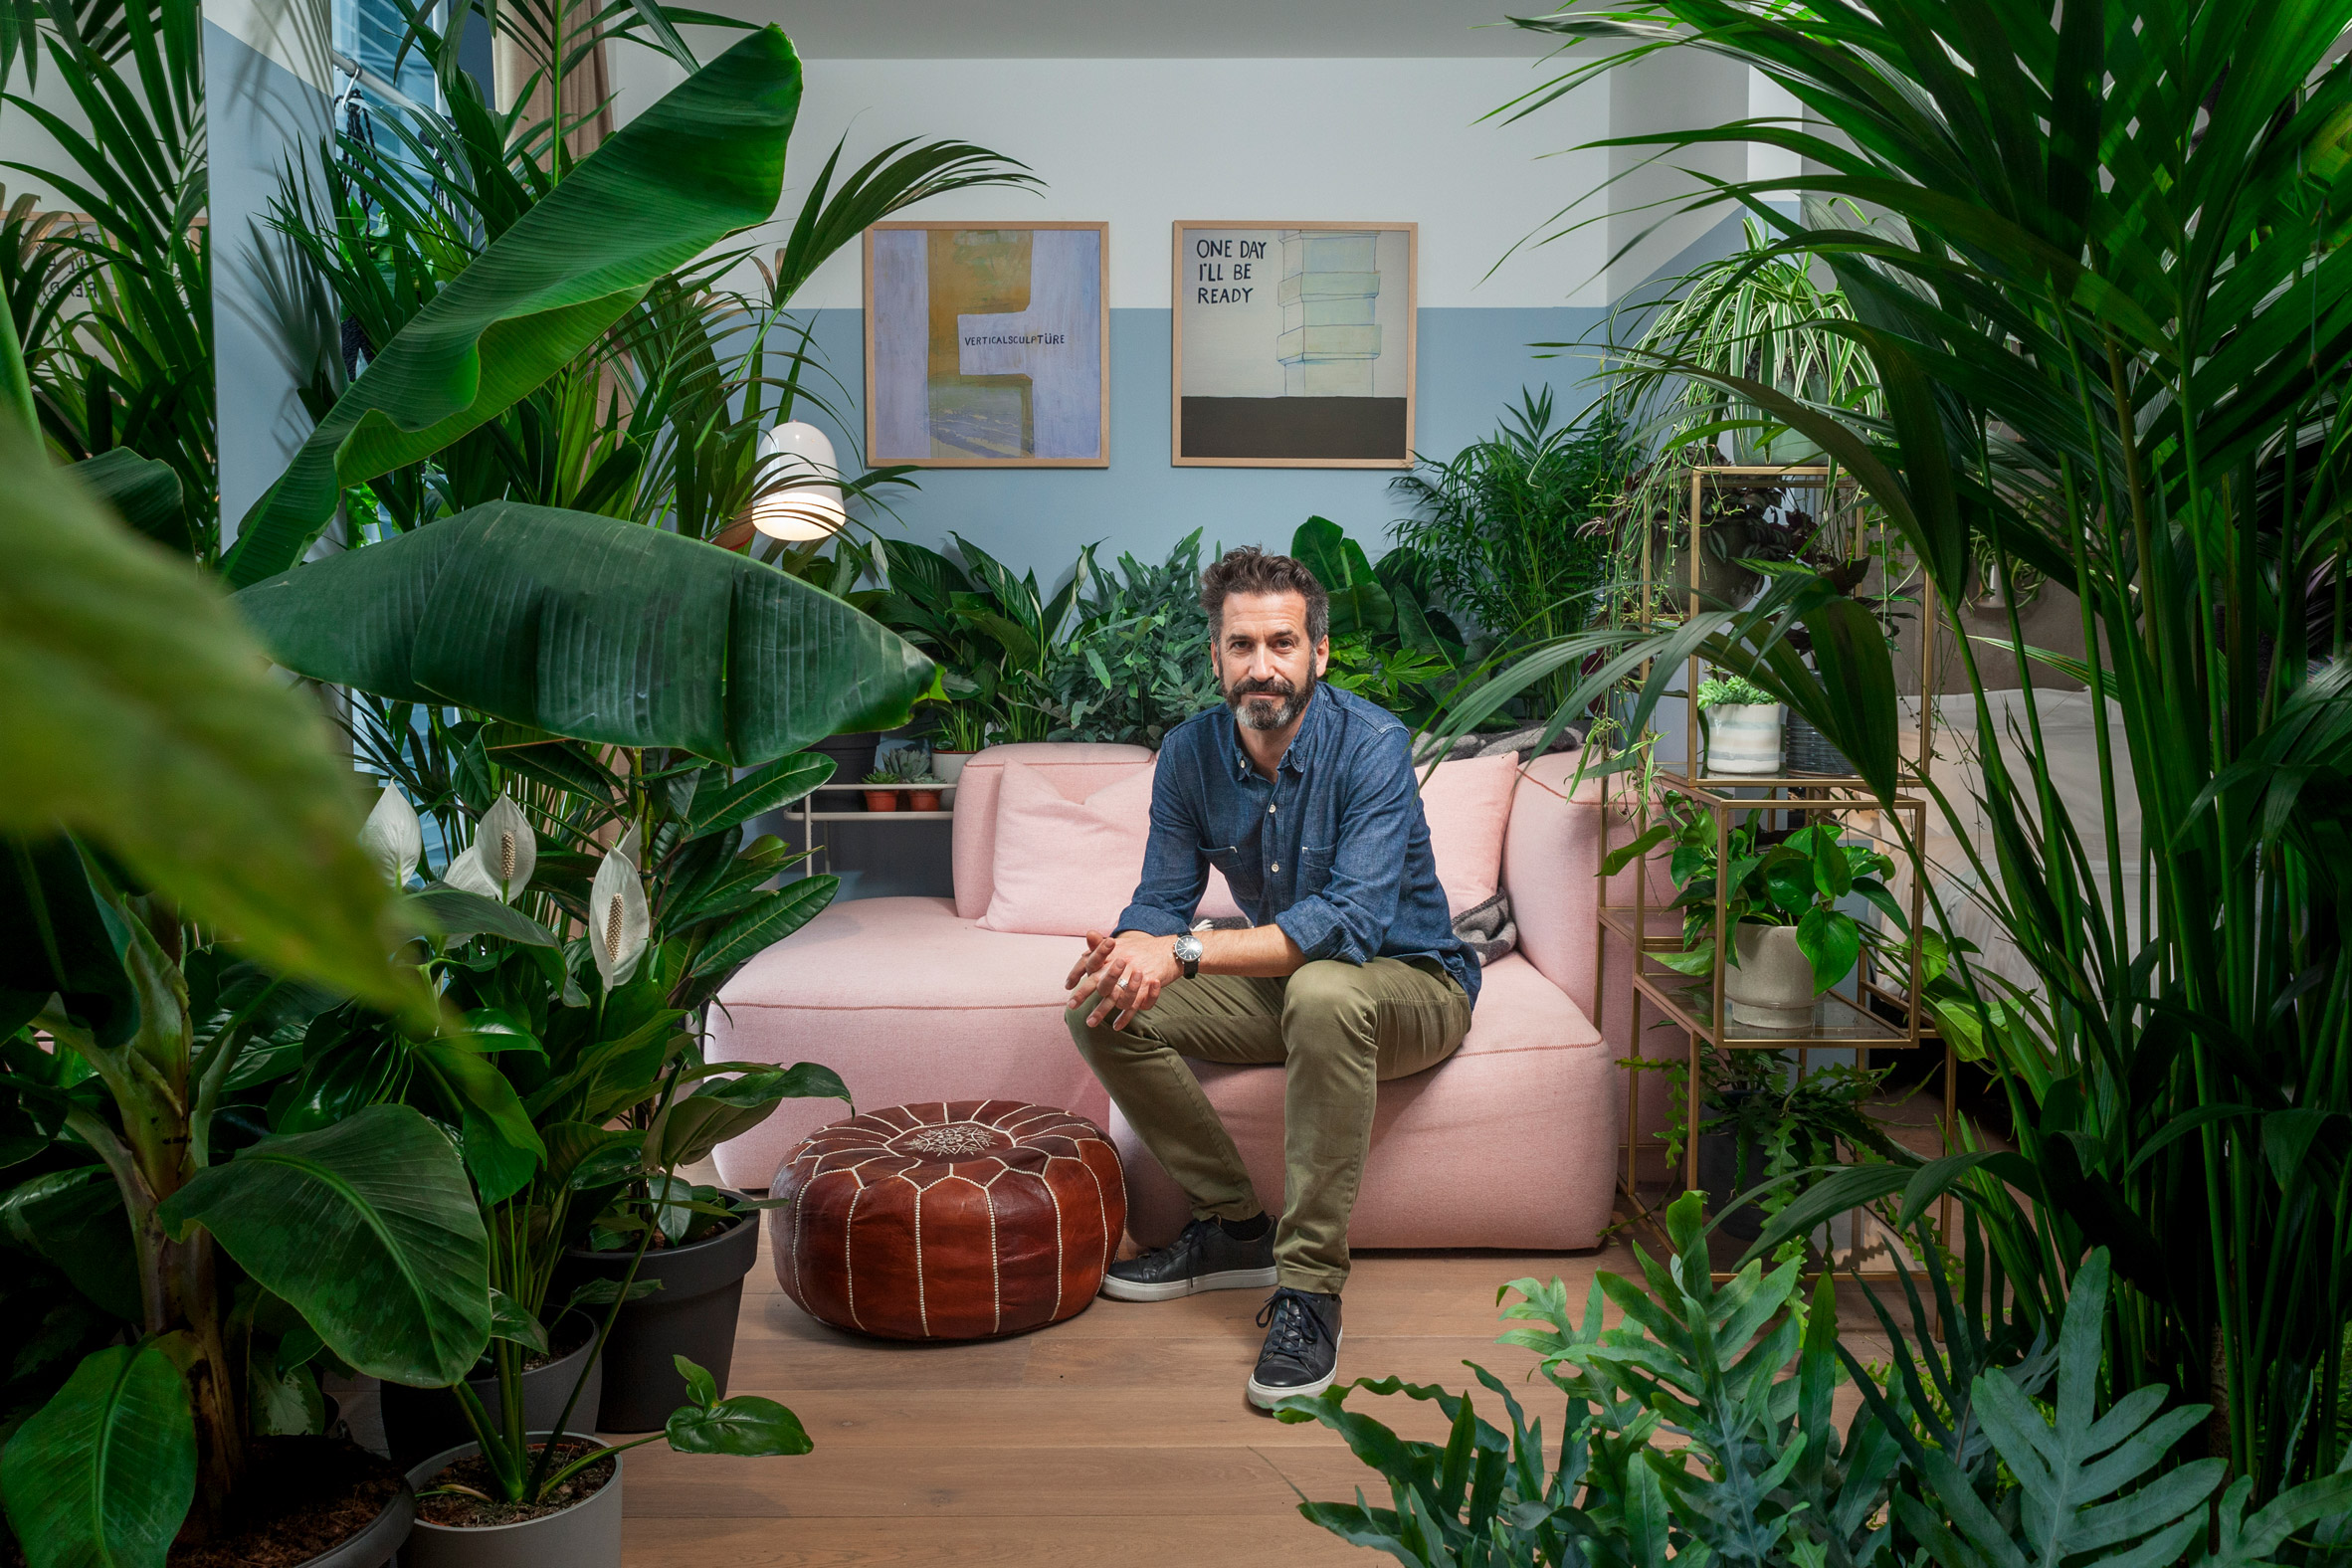 Biophilic design expert Oliver Heath